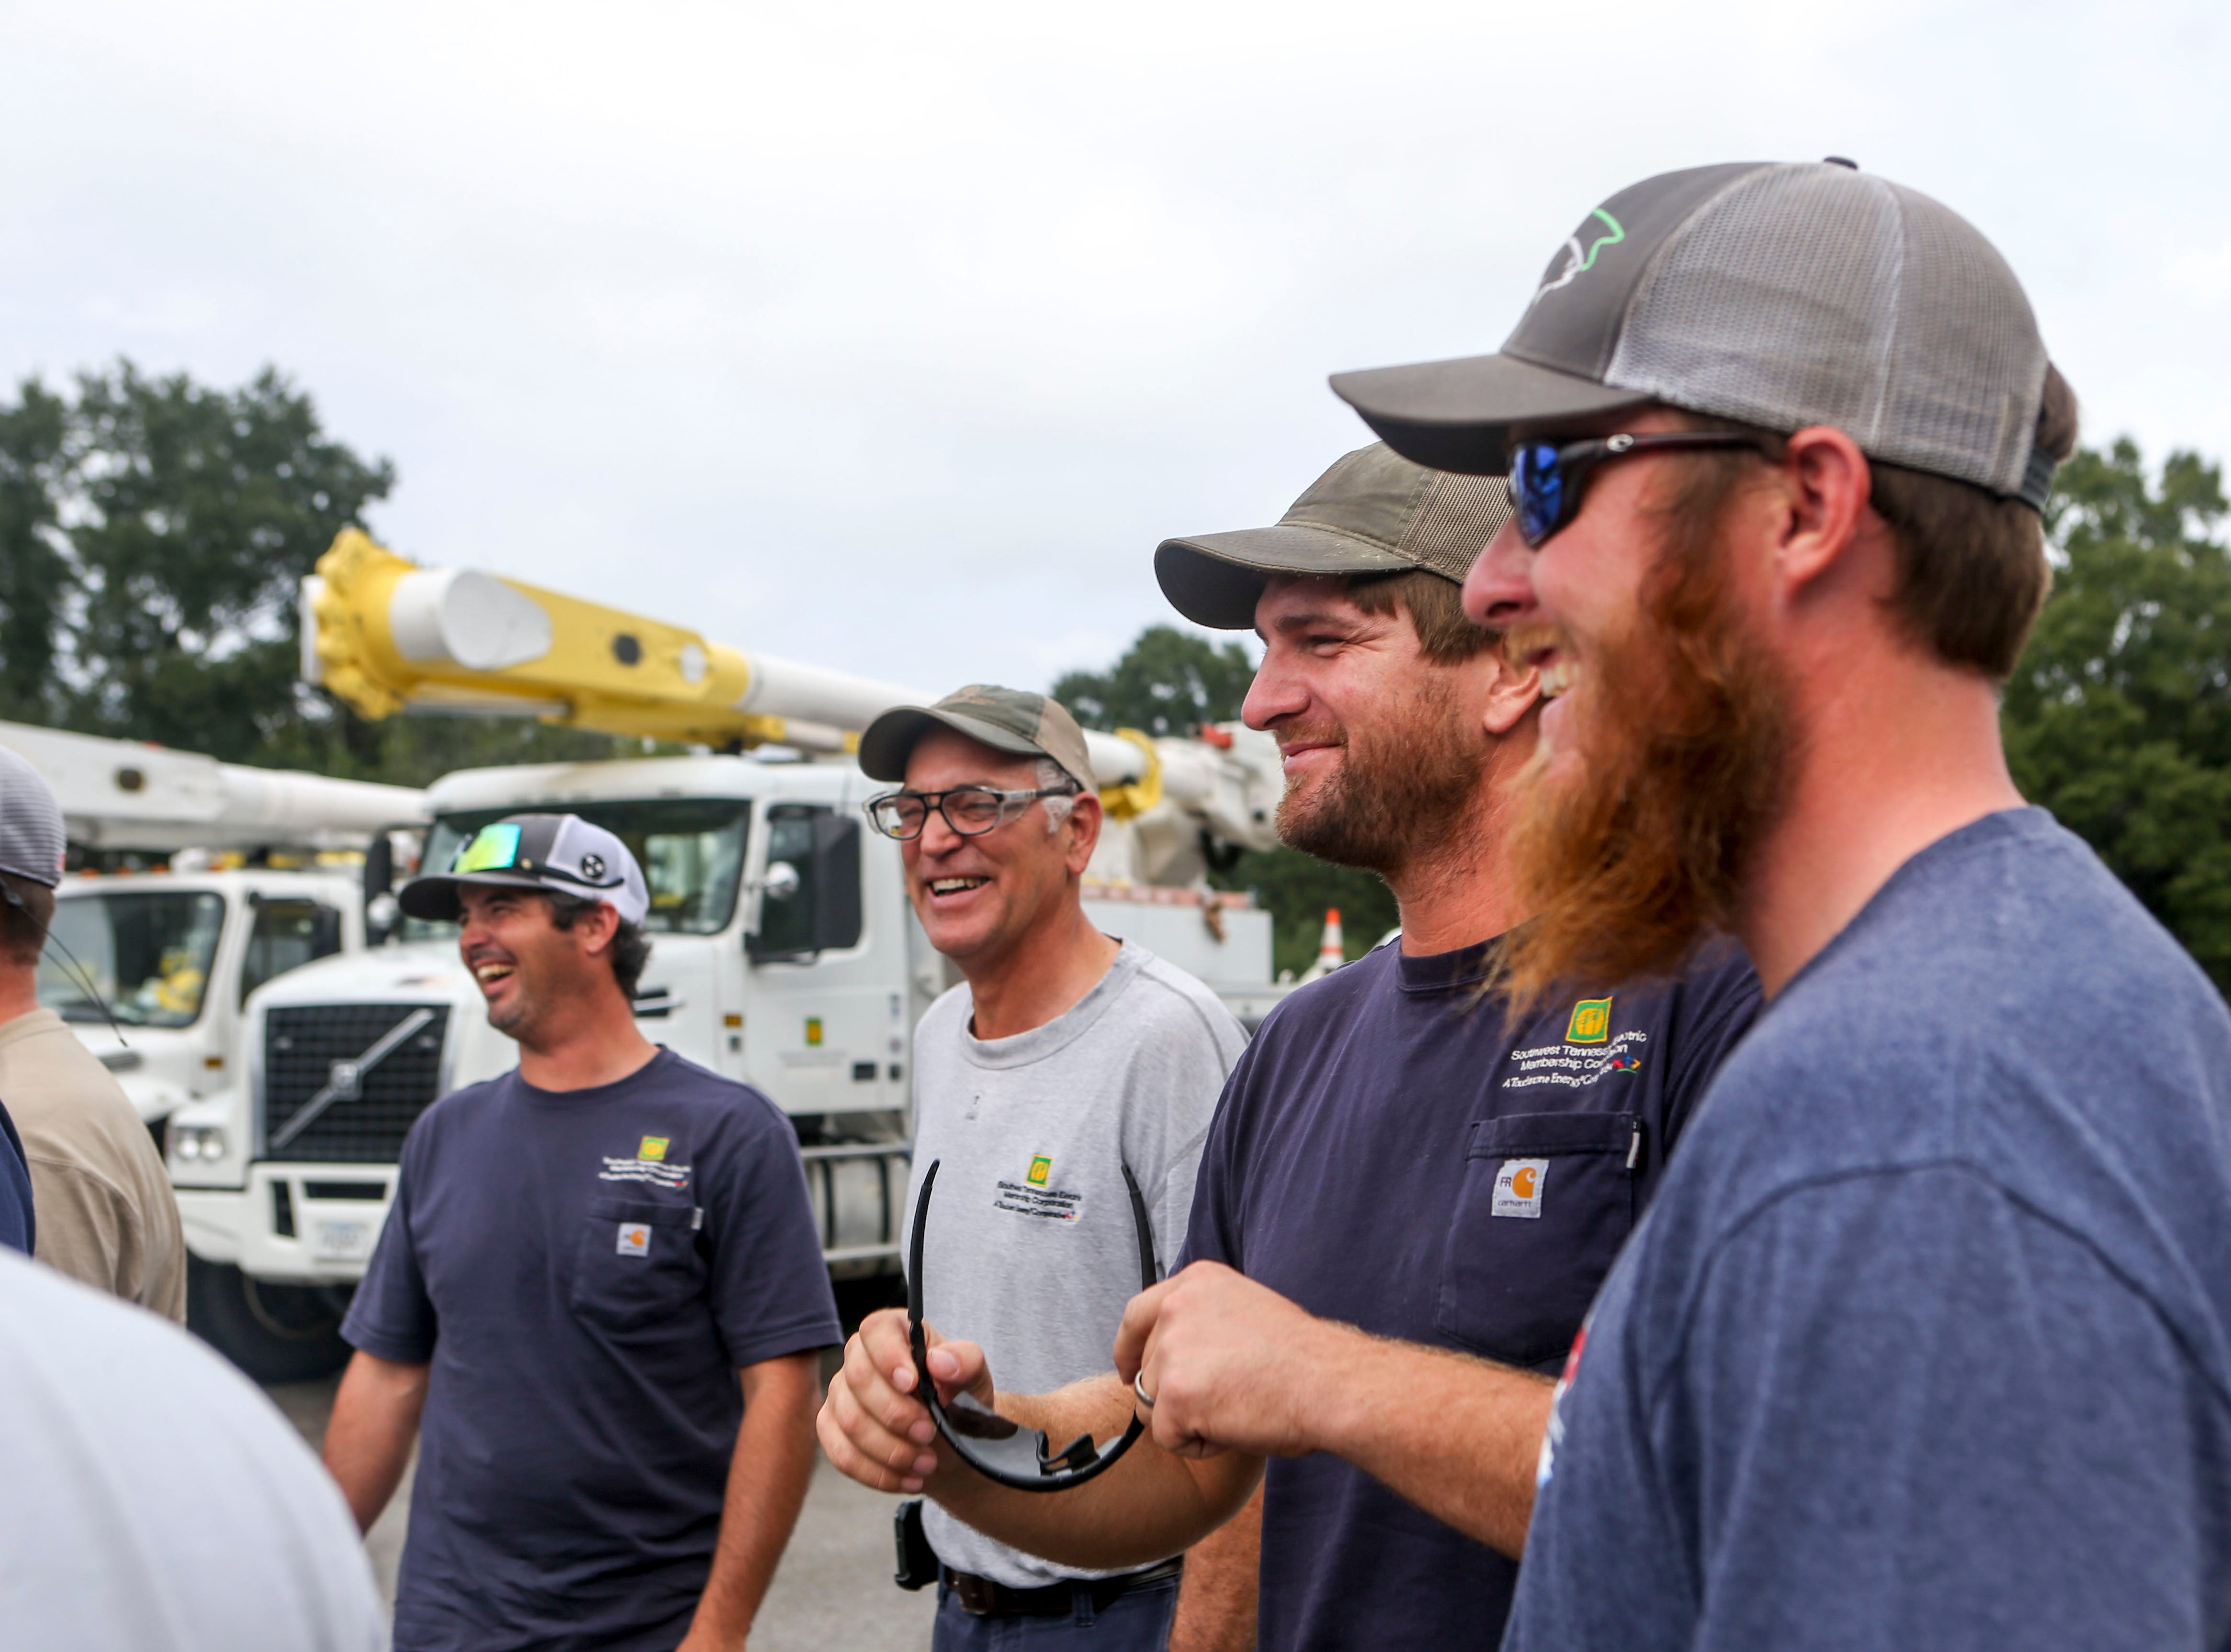 Linemen dispatched to North Carolina joke around while talking with management after returning to Southwest Tennessee Electric in Jackson, Tenn., Monday, Sept. 24, 2018.